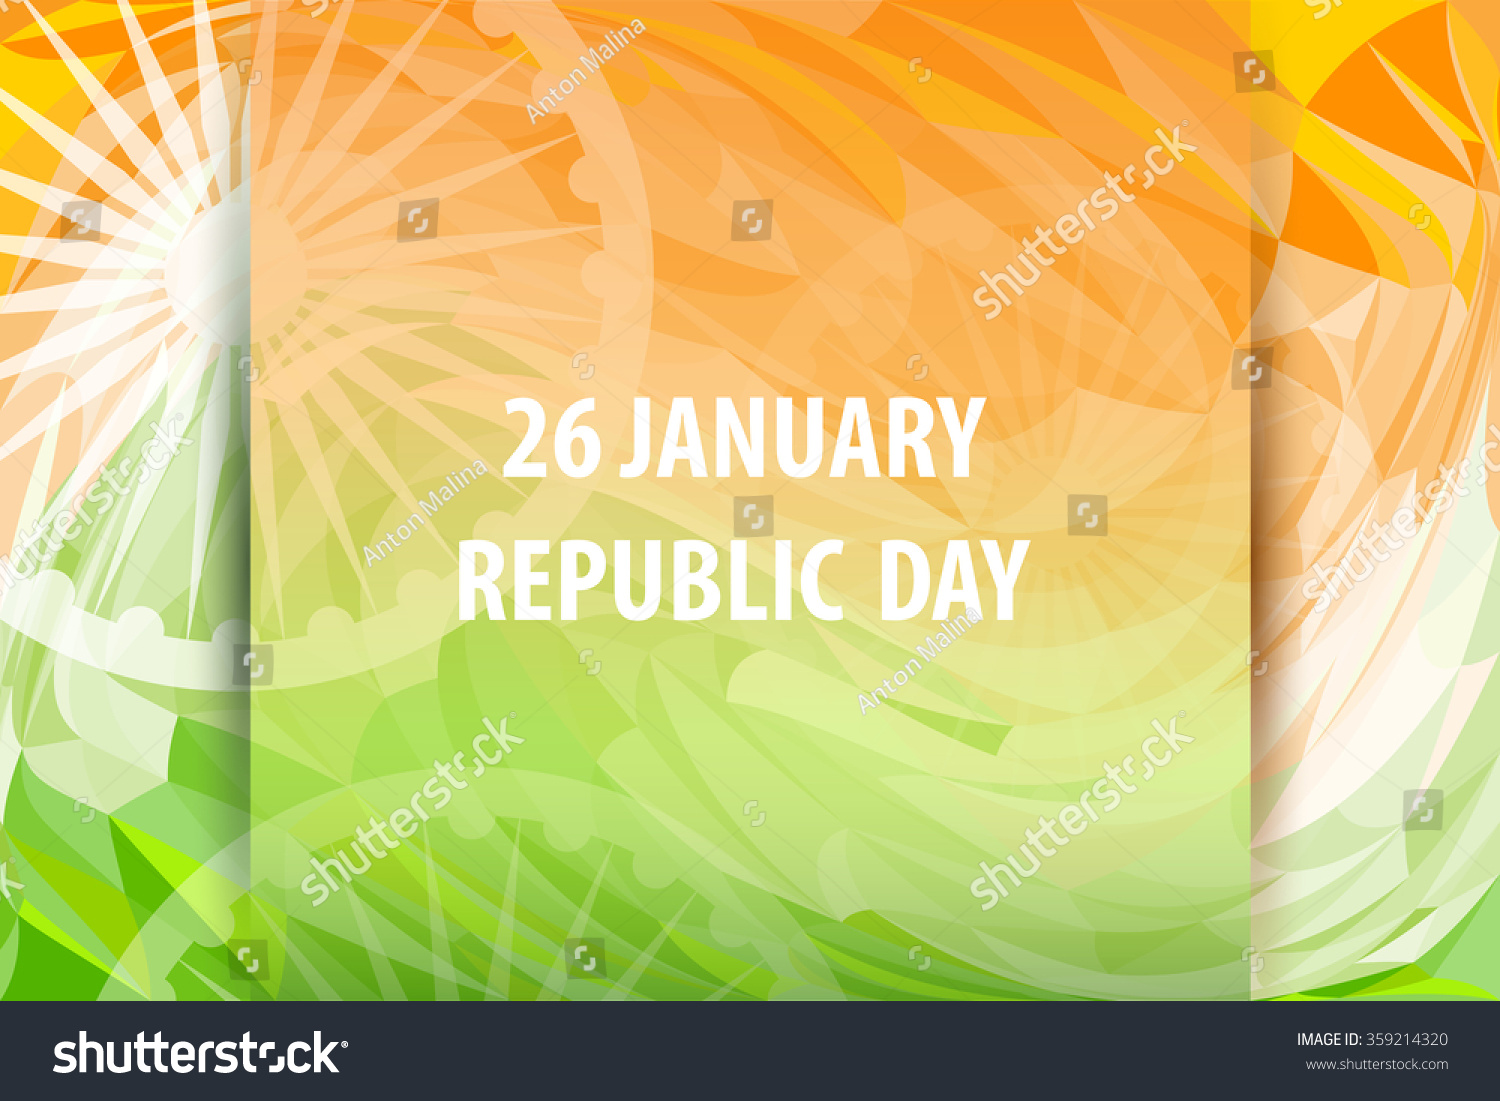 Republic Day India 26 January Indian Stock Vector 359214320 ...